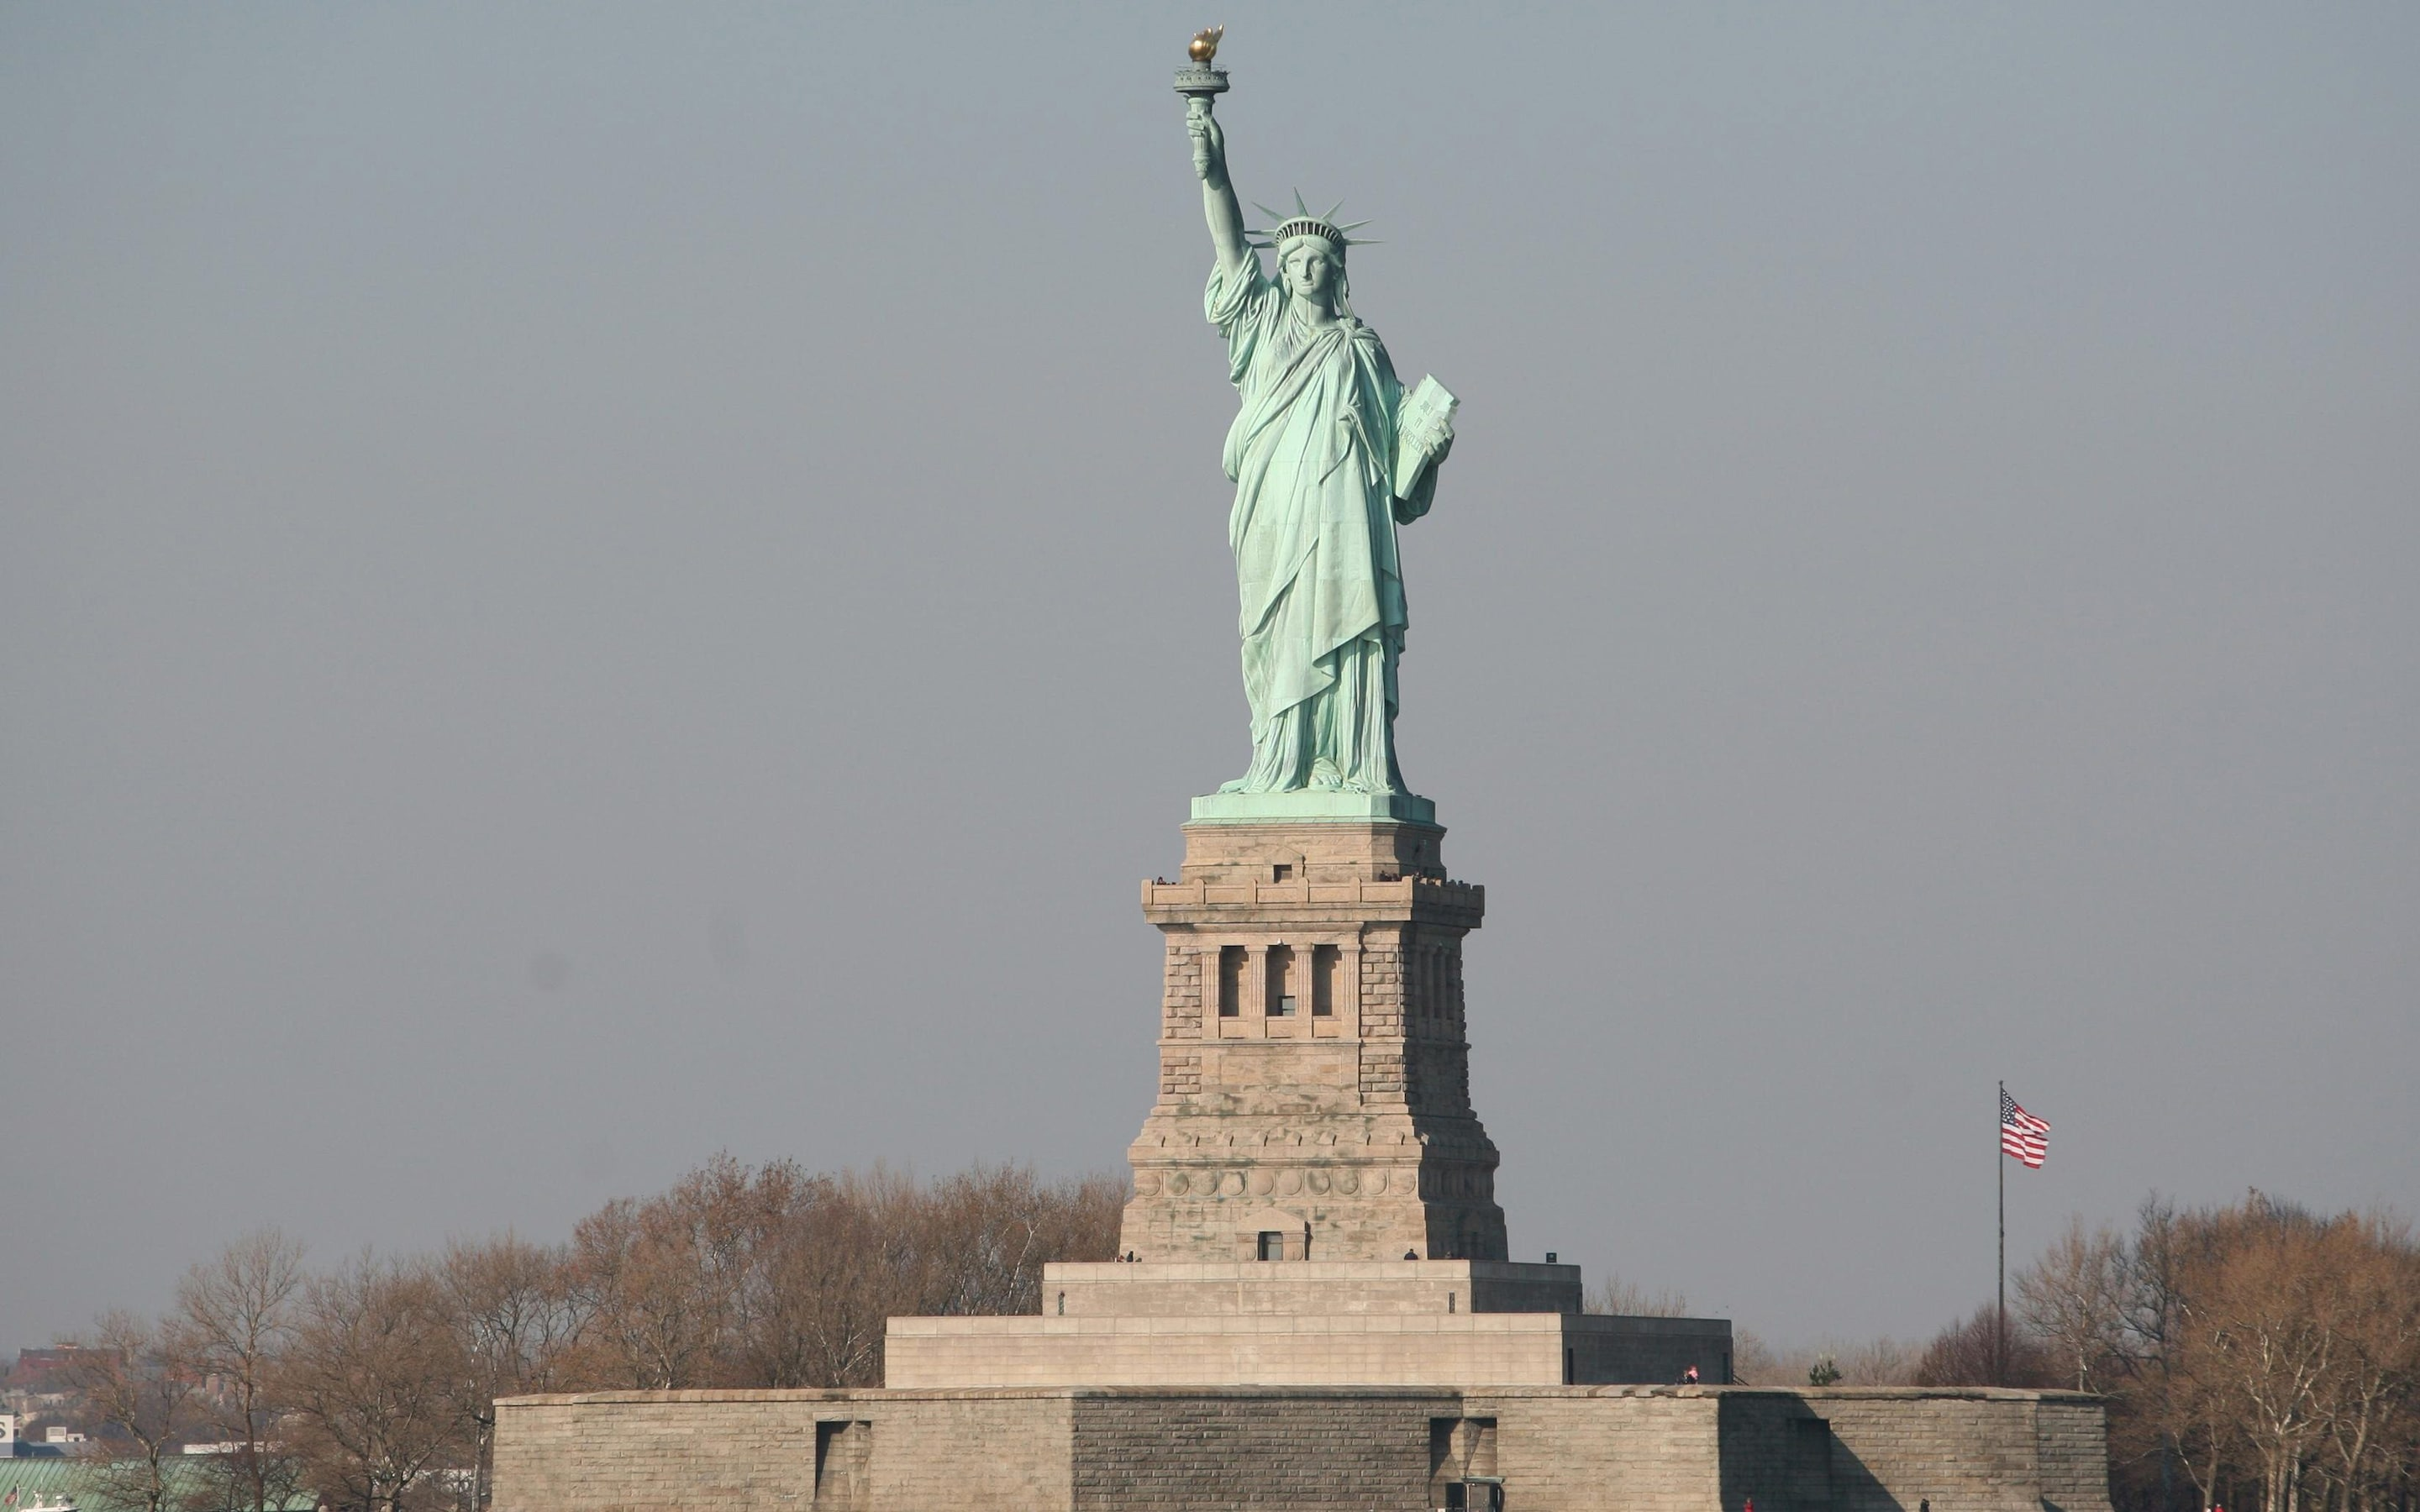 Trump immigration official offers revised version of give me your poor Statue of Liberty inscription